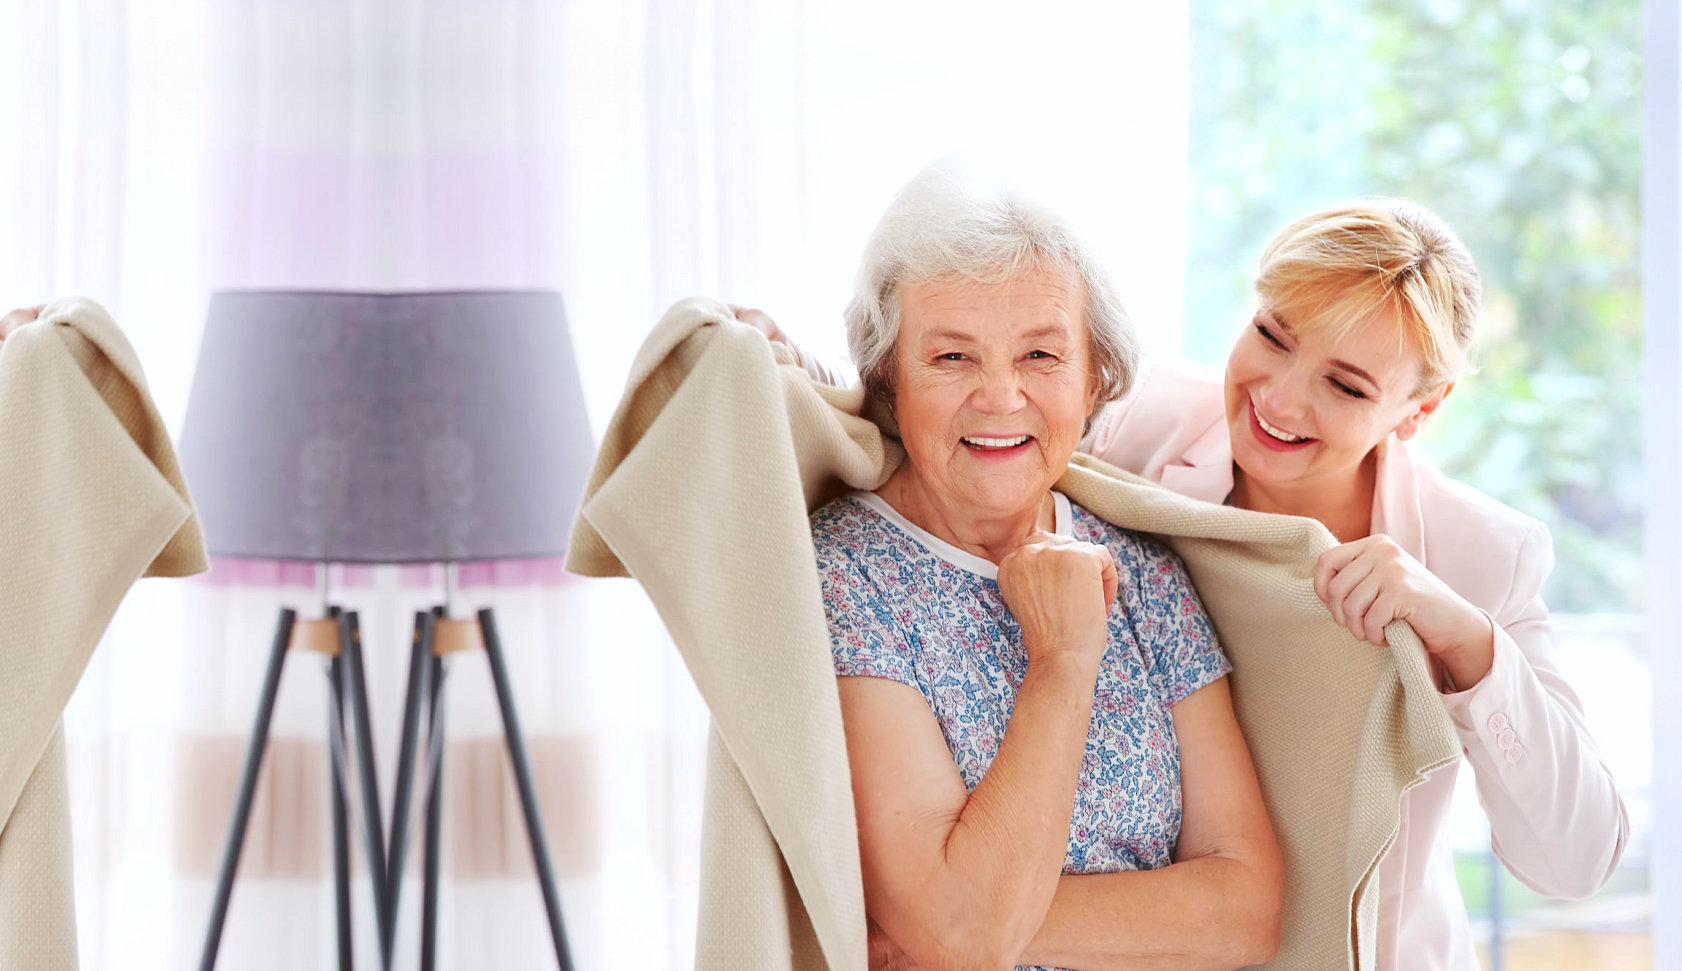 caregiver giving towel to a senior woman